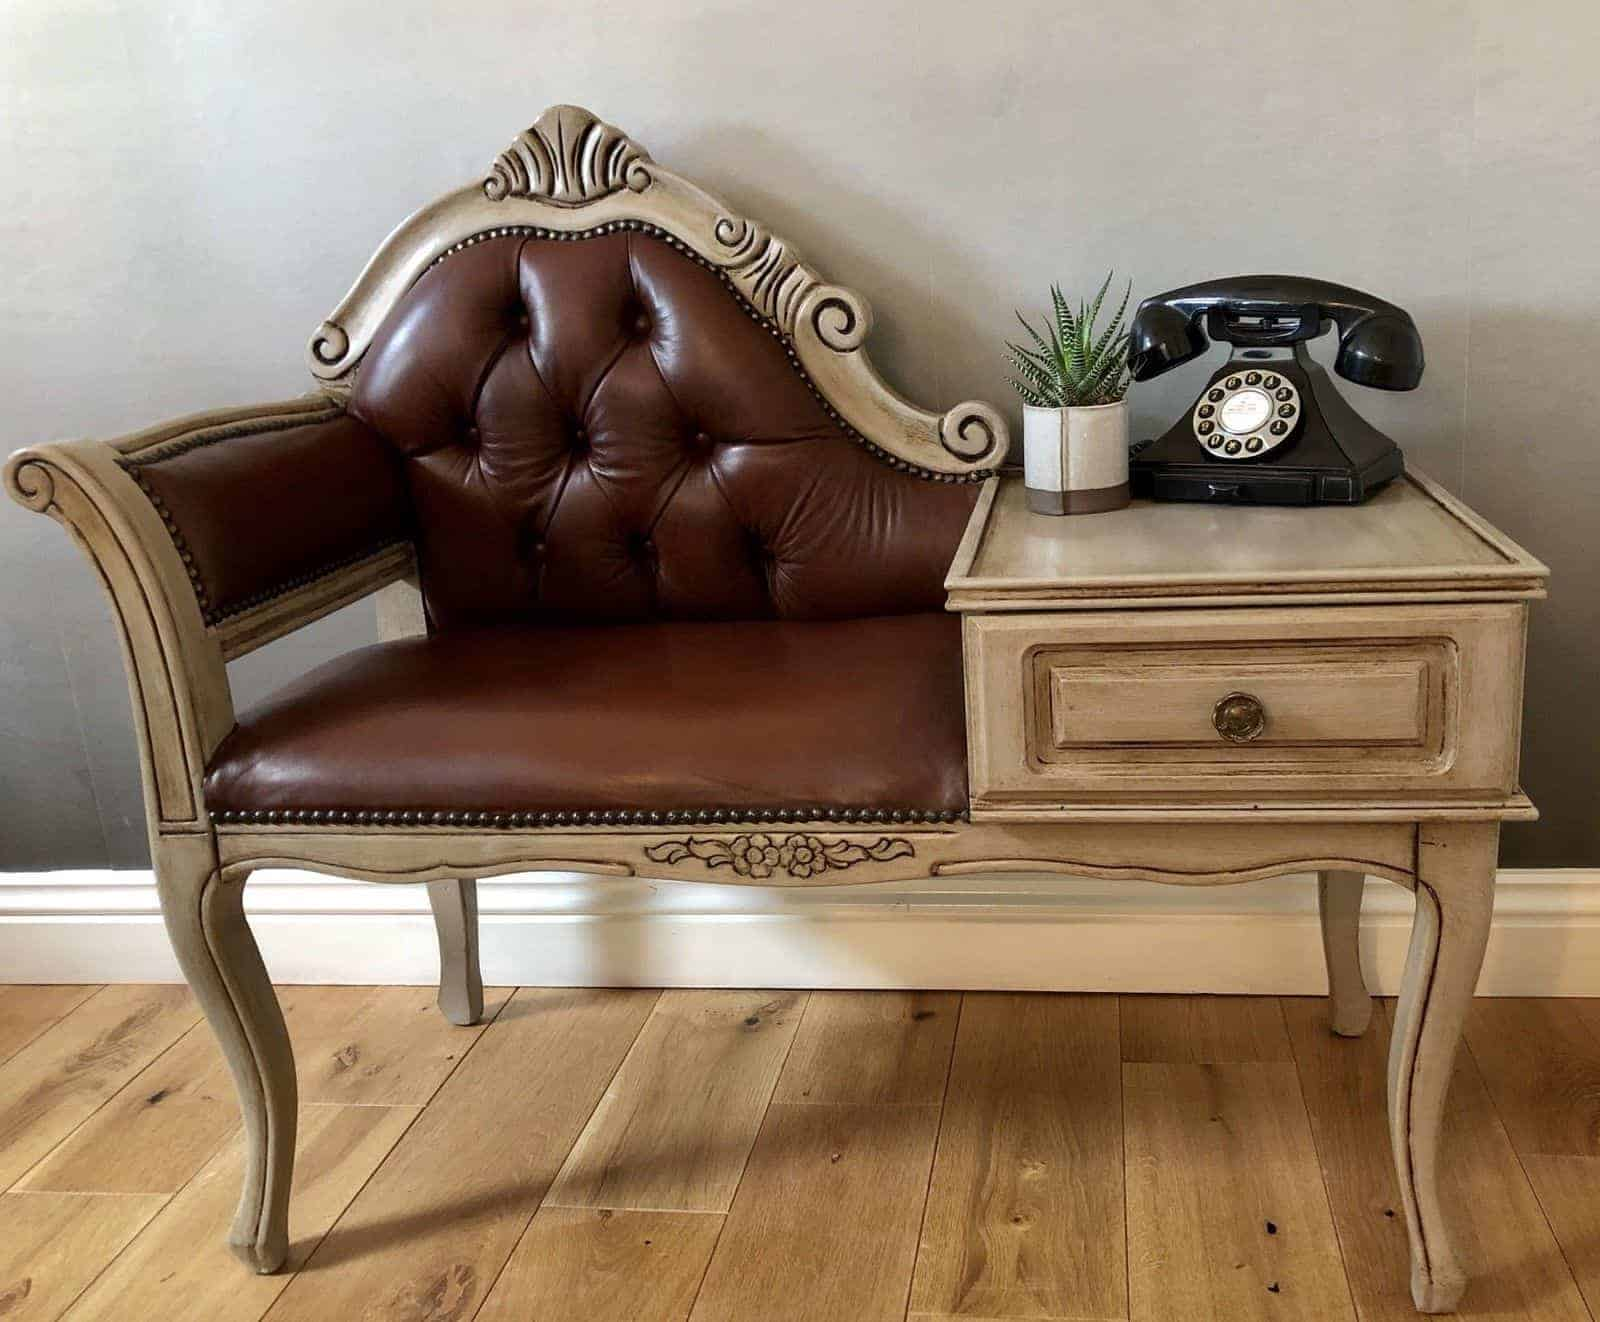 upcycled telephone seat